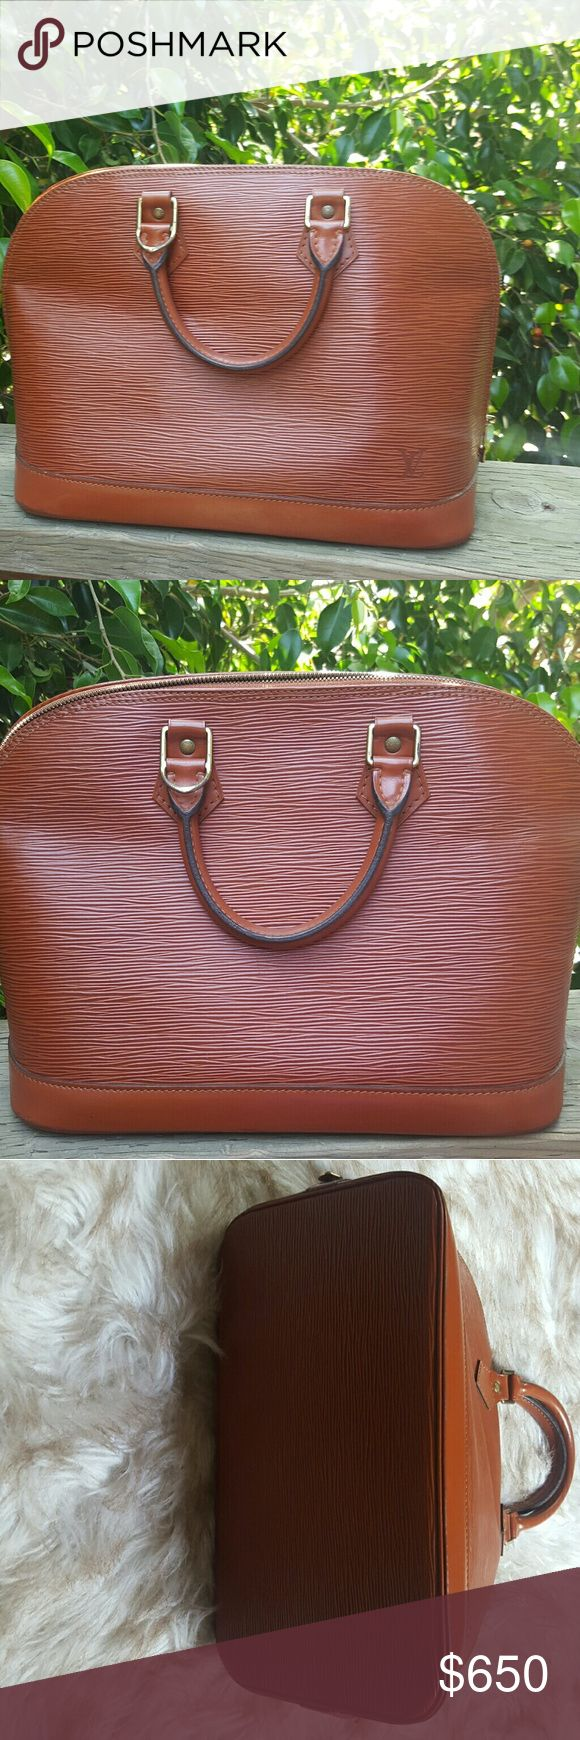 Authentic Louis Vuitton Alma epi Authentic Louis Vuitton Alma EPI leather bag in good condition. This was one of my favorite bags, so elegant and classy. Color is rare to find. Louis Vuitton Bags Satchels